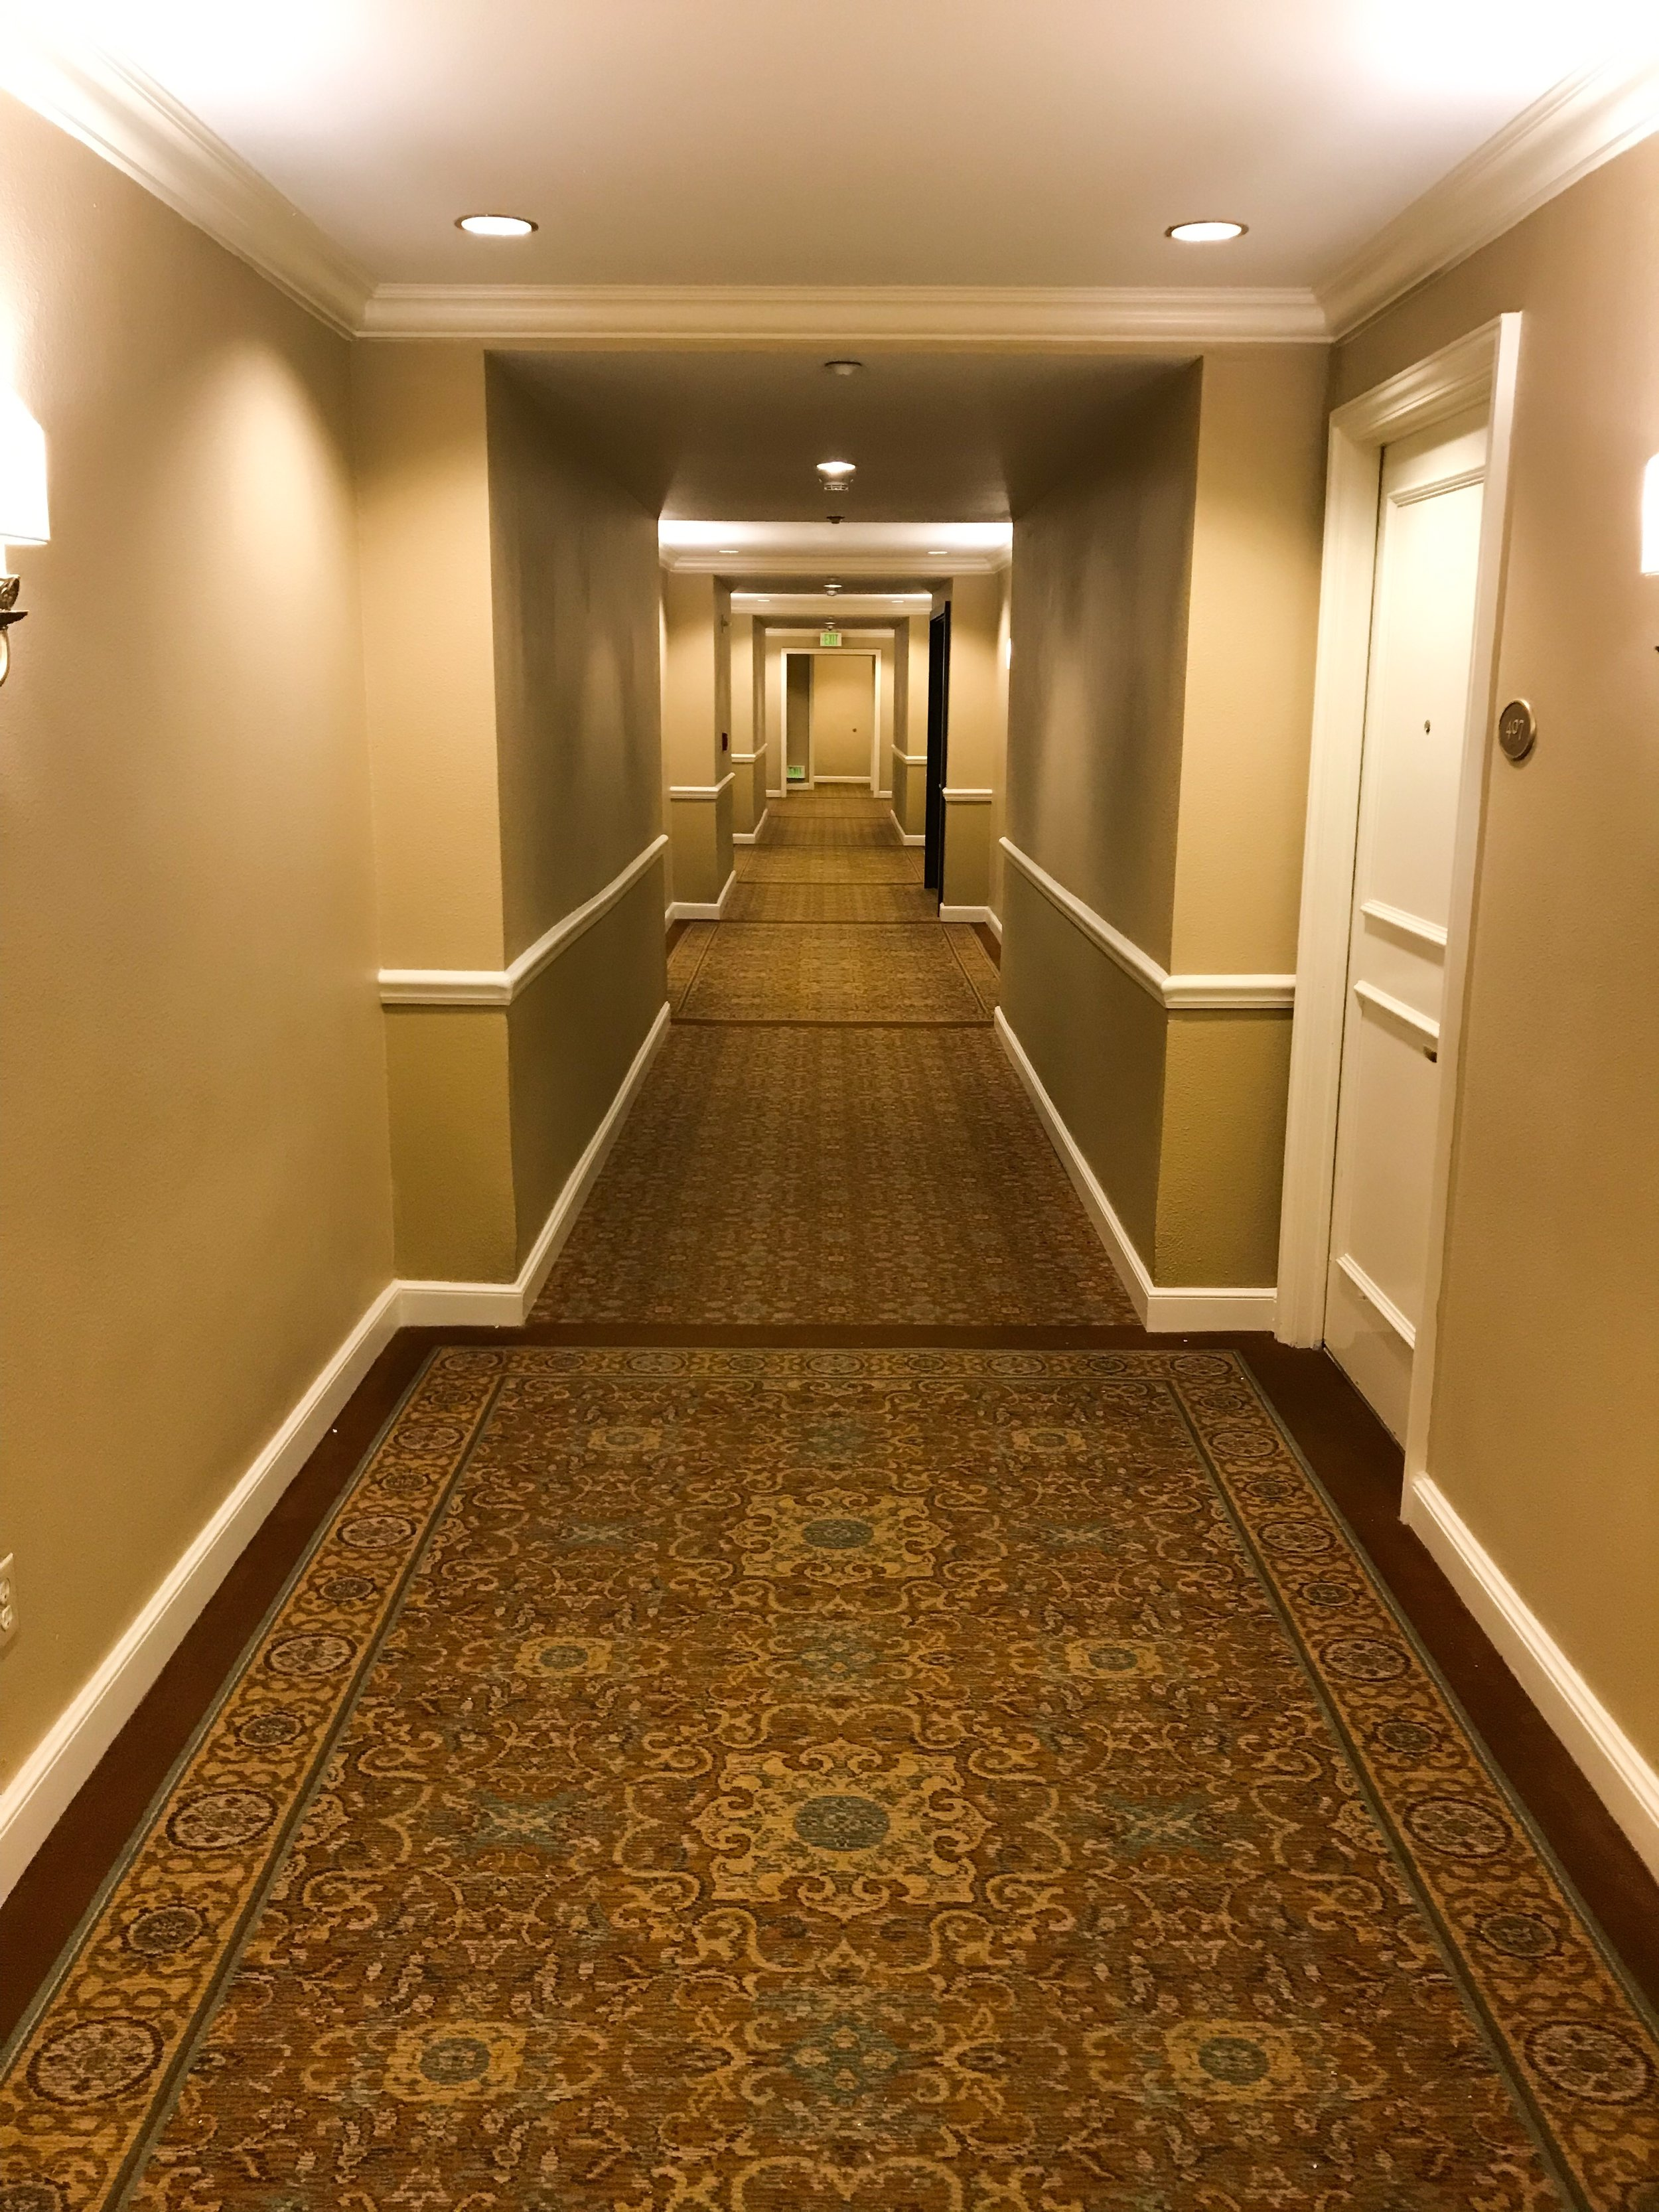 The hotel was well maintained, but was in need of a refresh. The hallway carpet was a little worn.